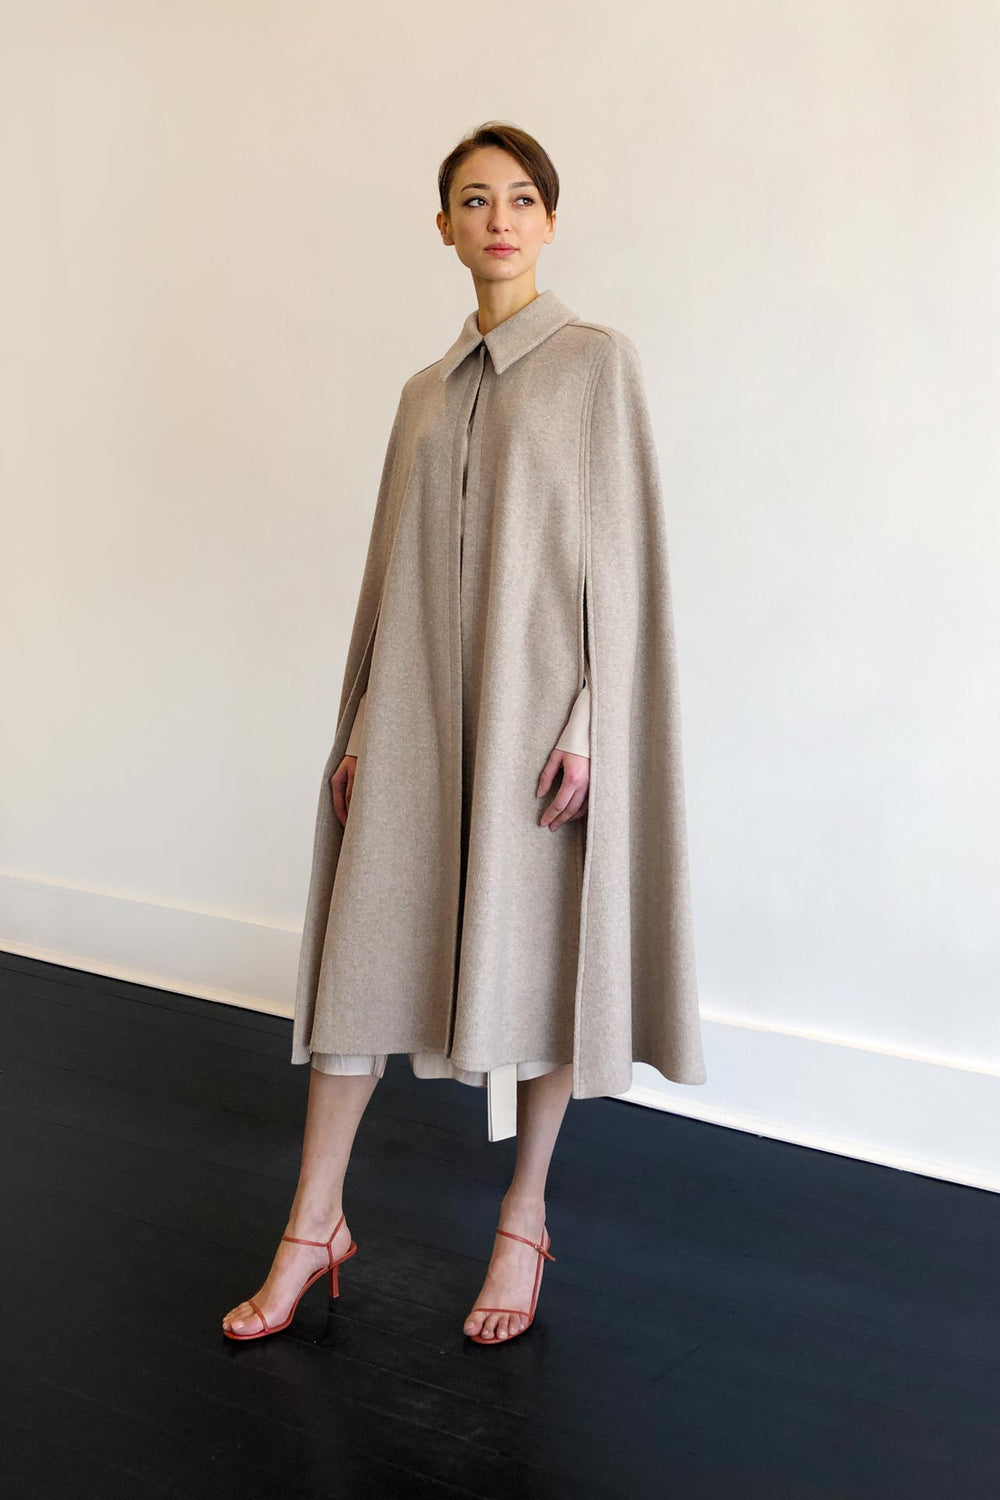 Fashion Designer CARL KAPP collection | Imperial Wool Beige Cape for cocktail, work | Sydney Australia